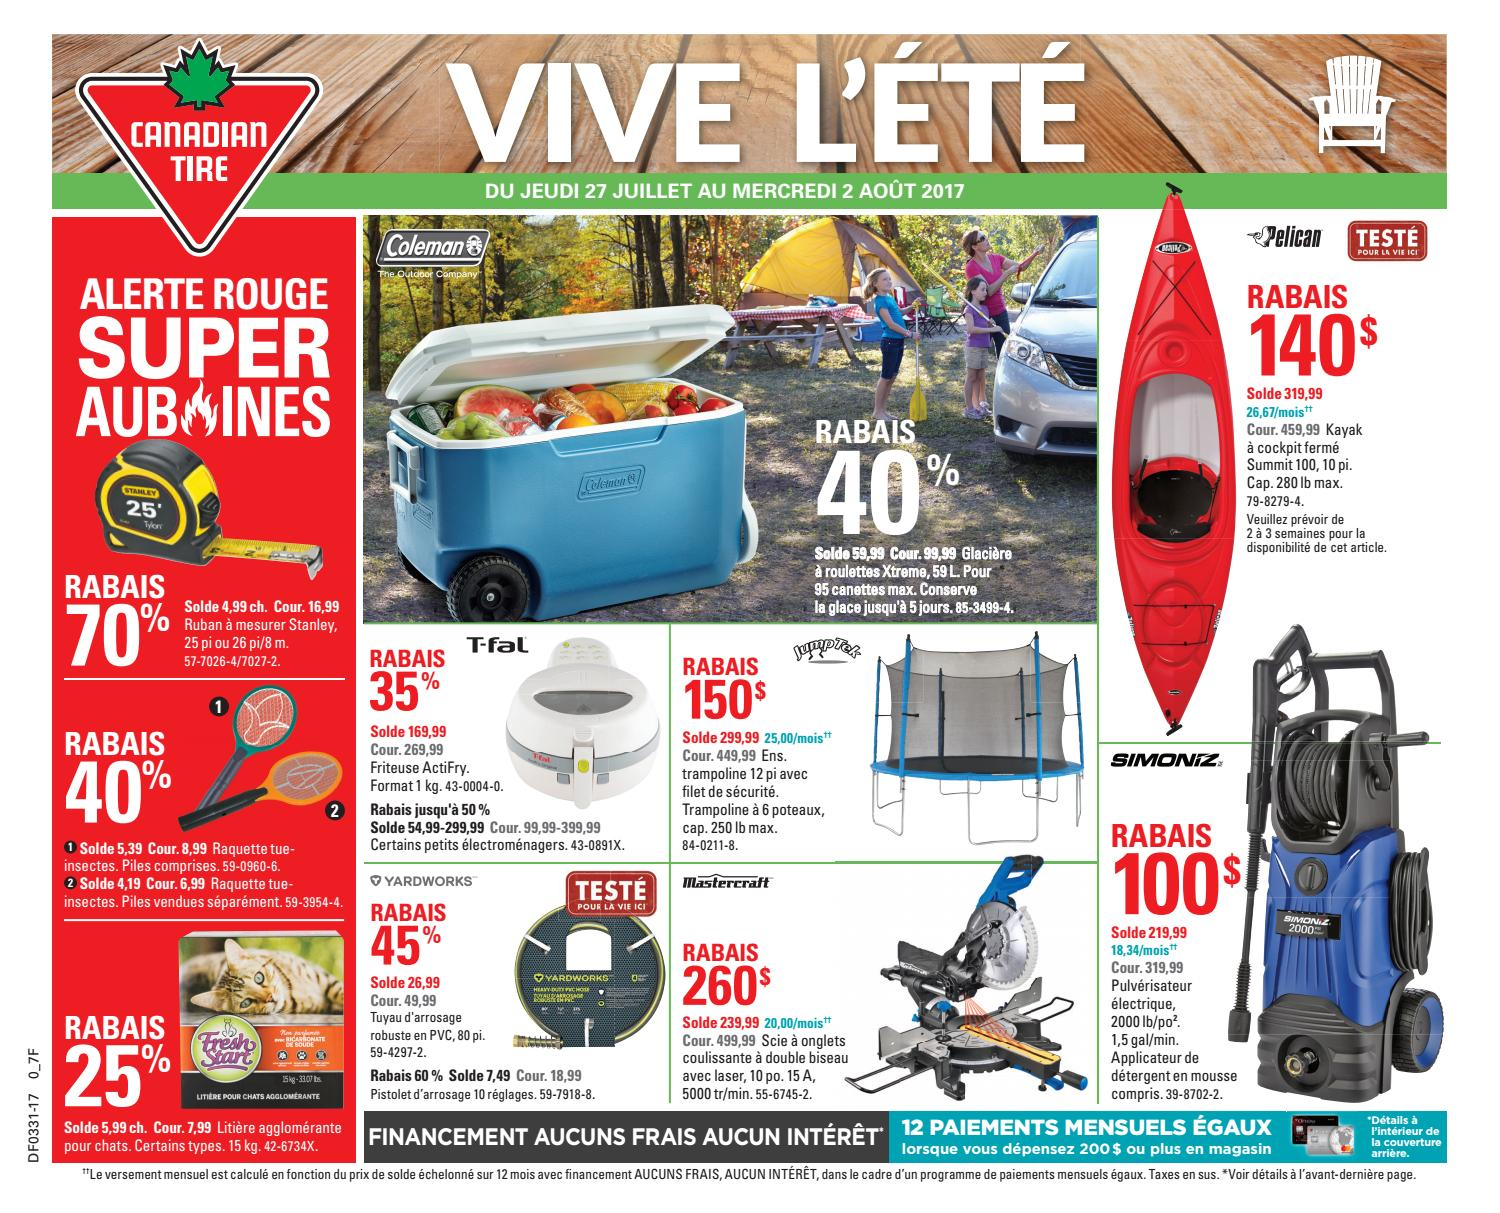 Pouf Exterieur Canadian Tire Publisac 2017 Flyer Ctc Wk31 Fr 7f By Salewhale Issuu